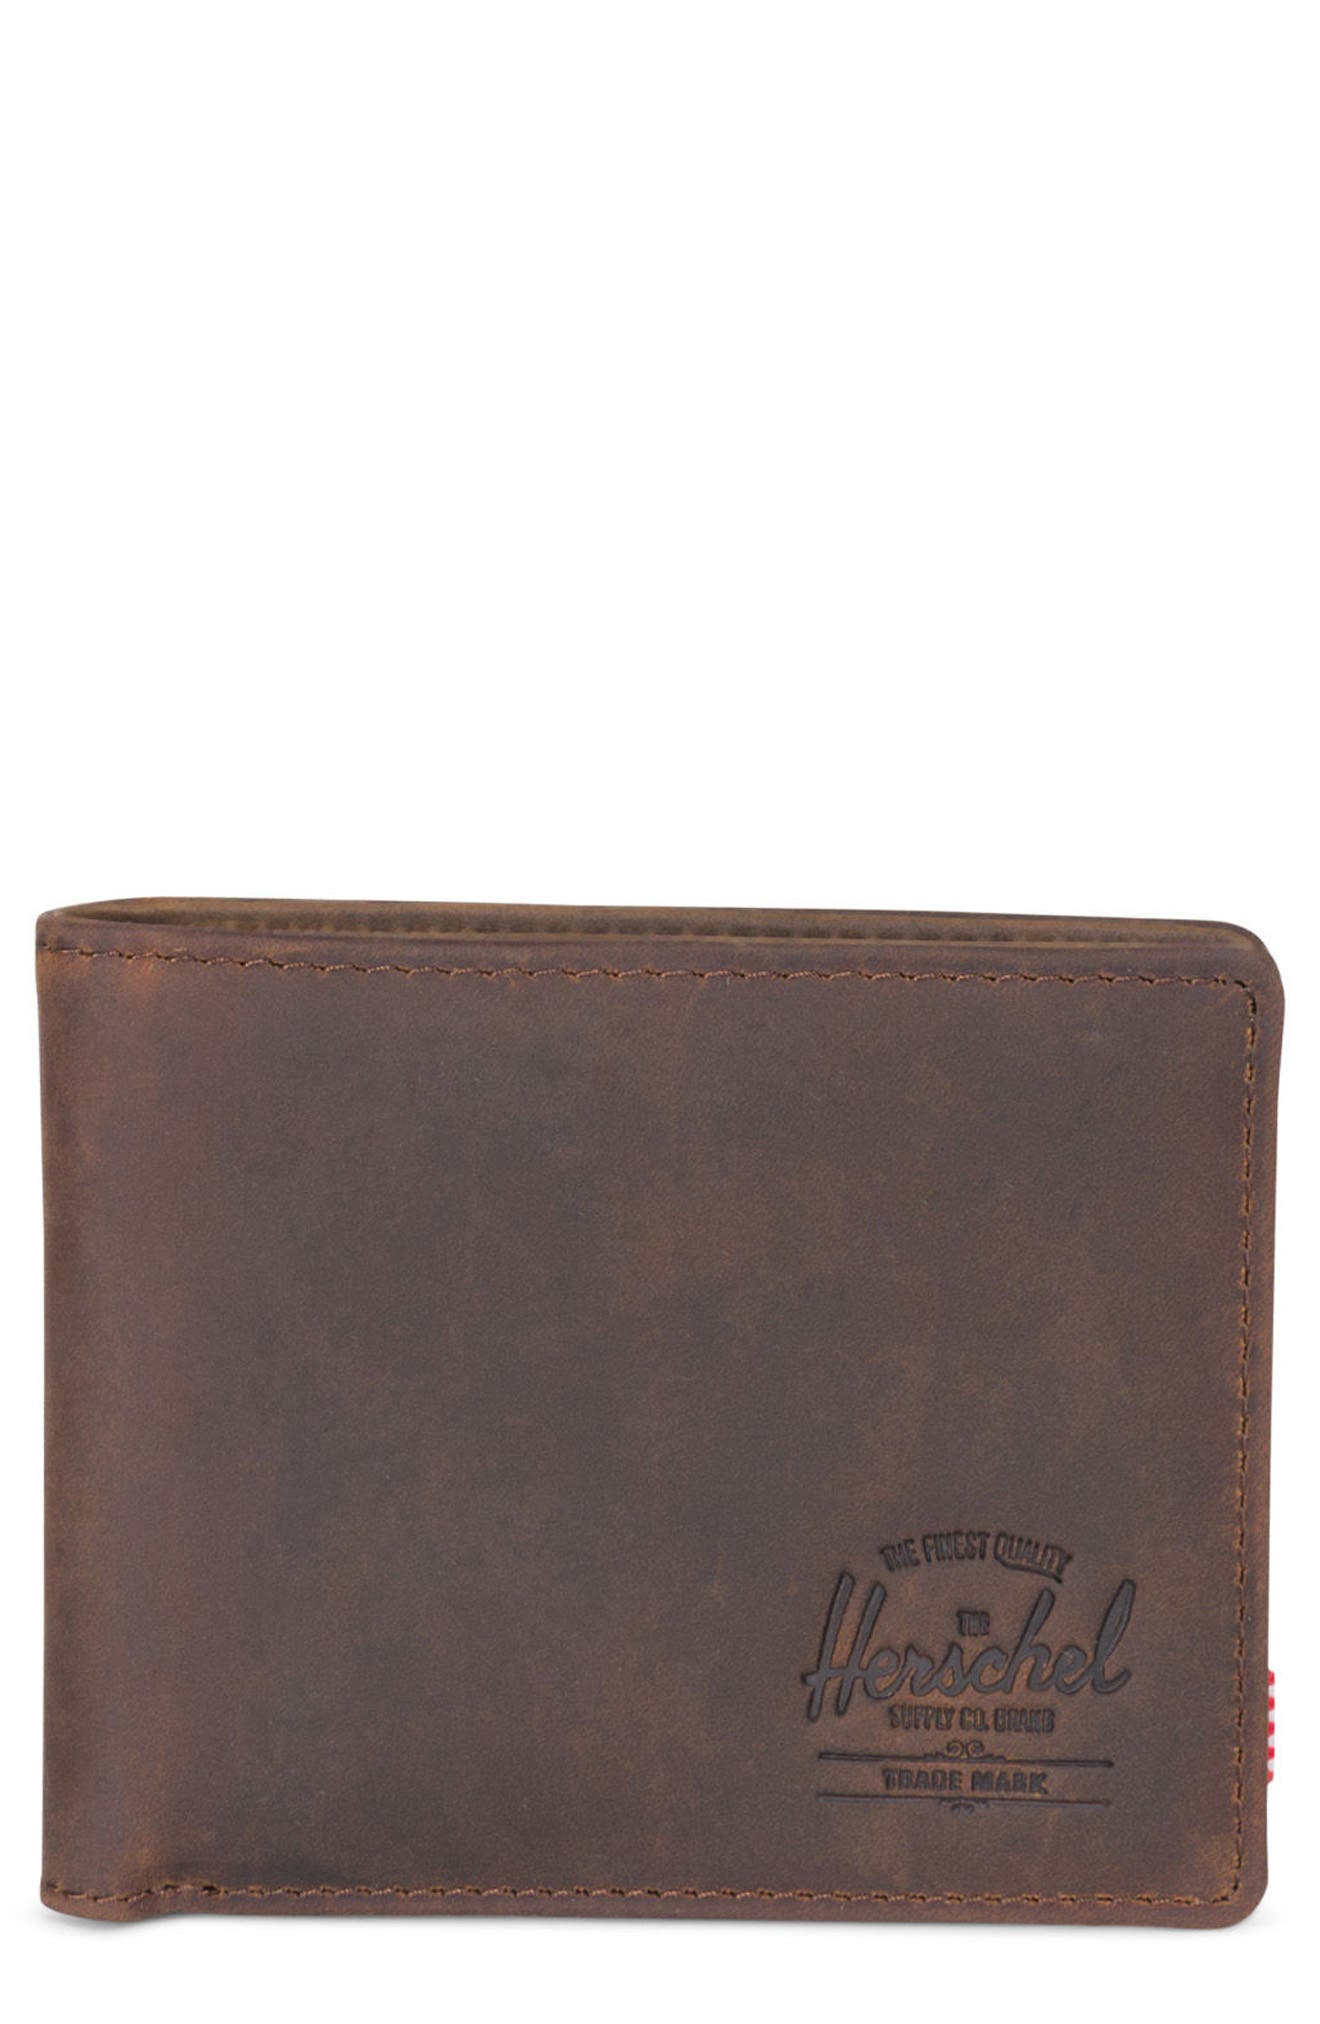 Hank Leather Wallet,                         Main,                         color, Nubuck Leather